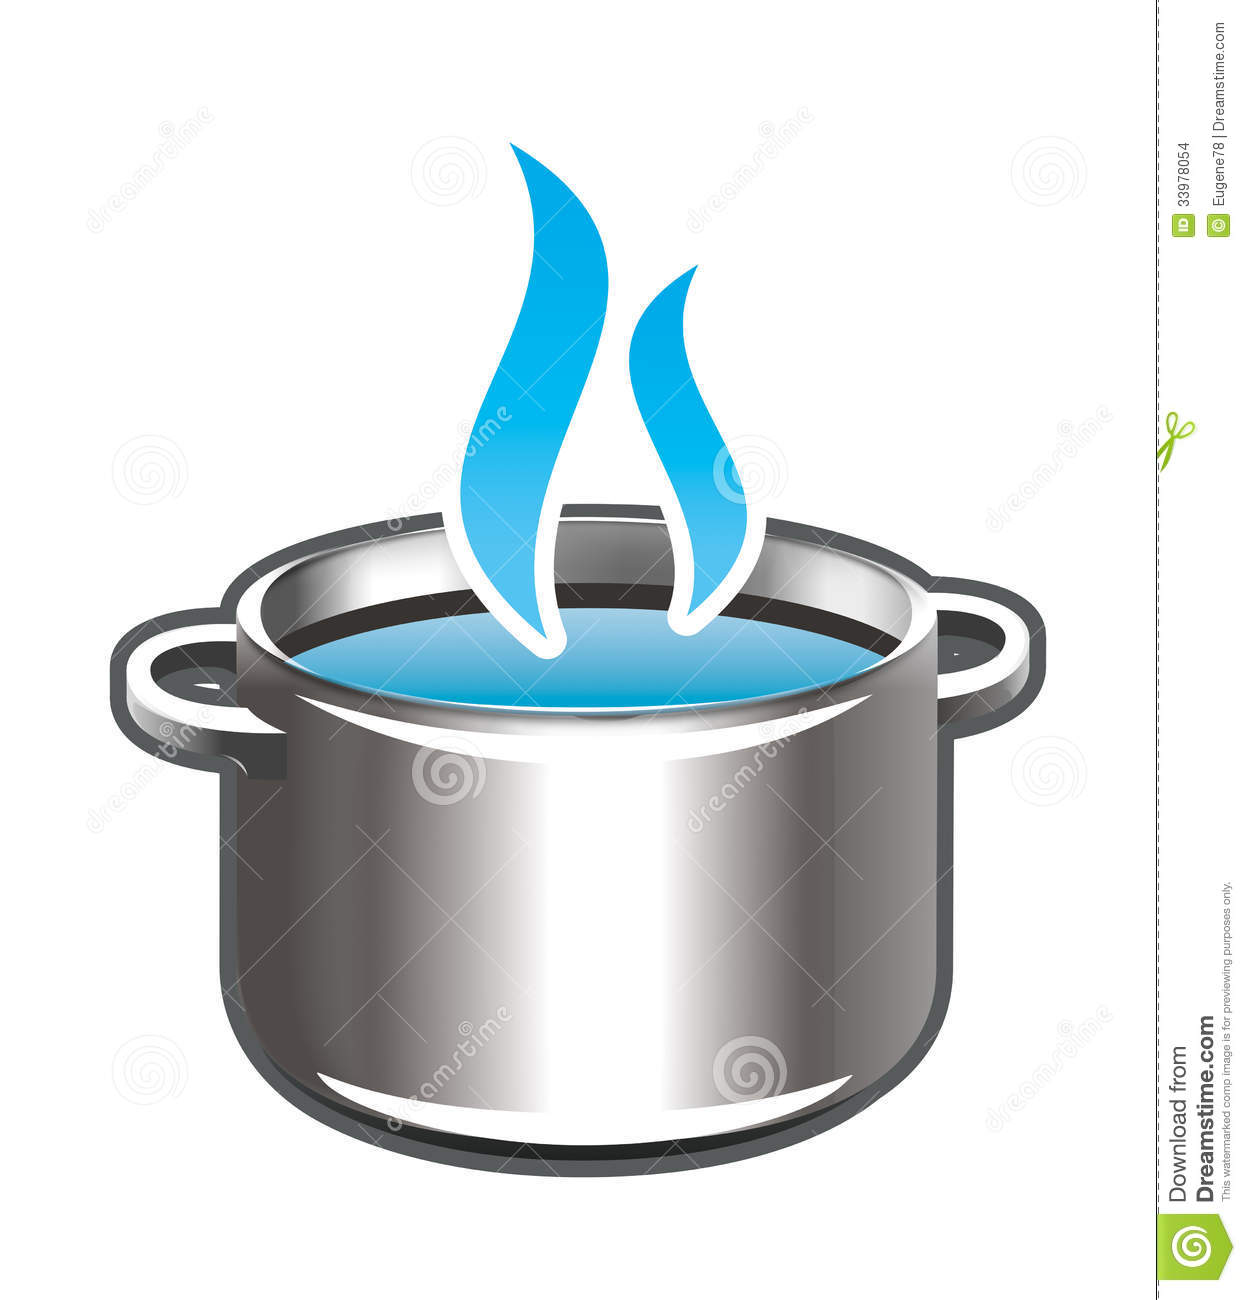 Hot water steam clipart - Clipground Boiling Teapot Clipart